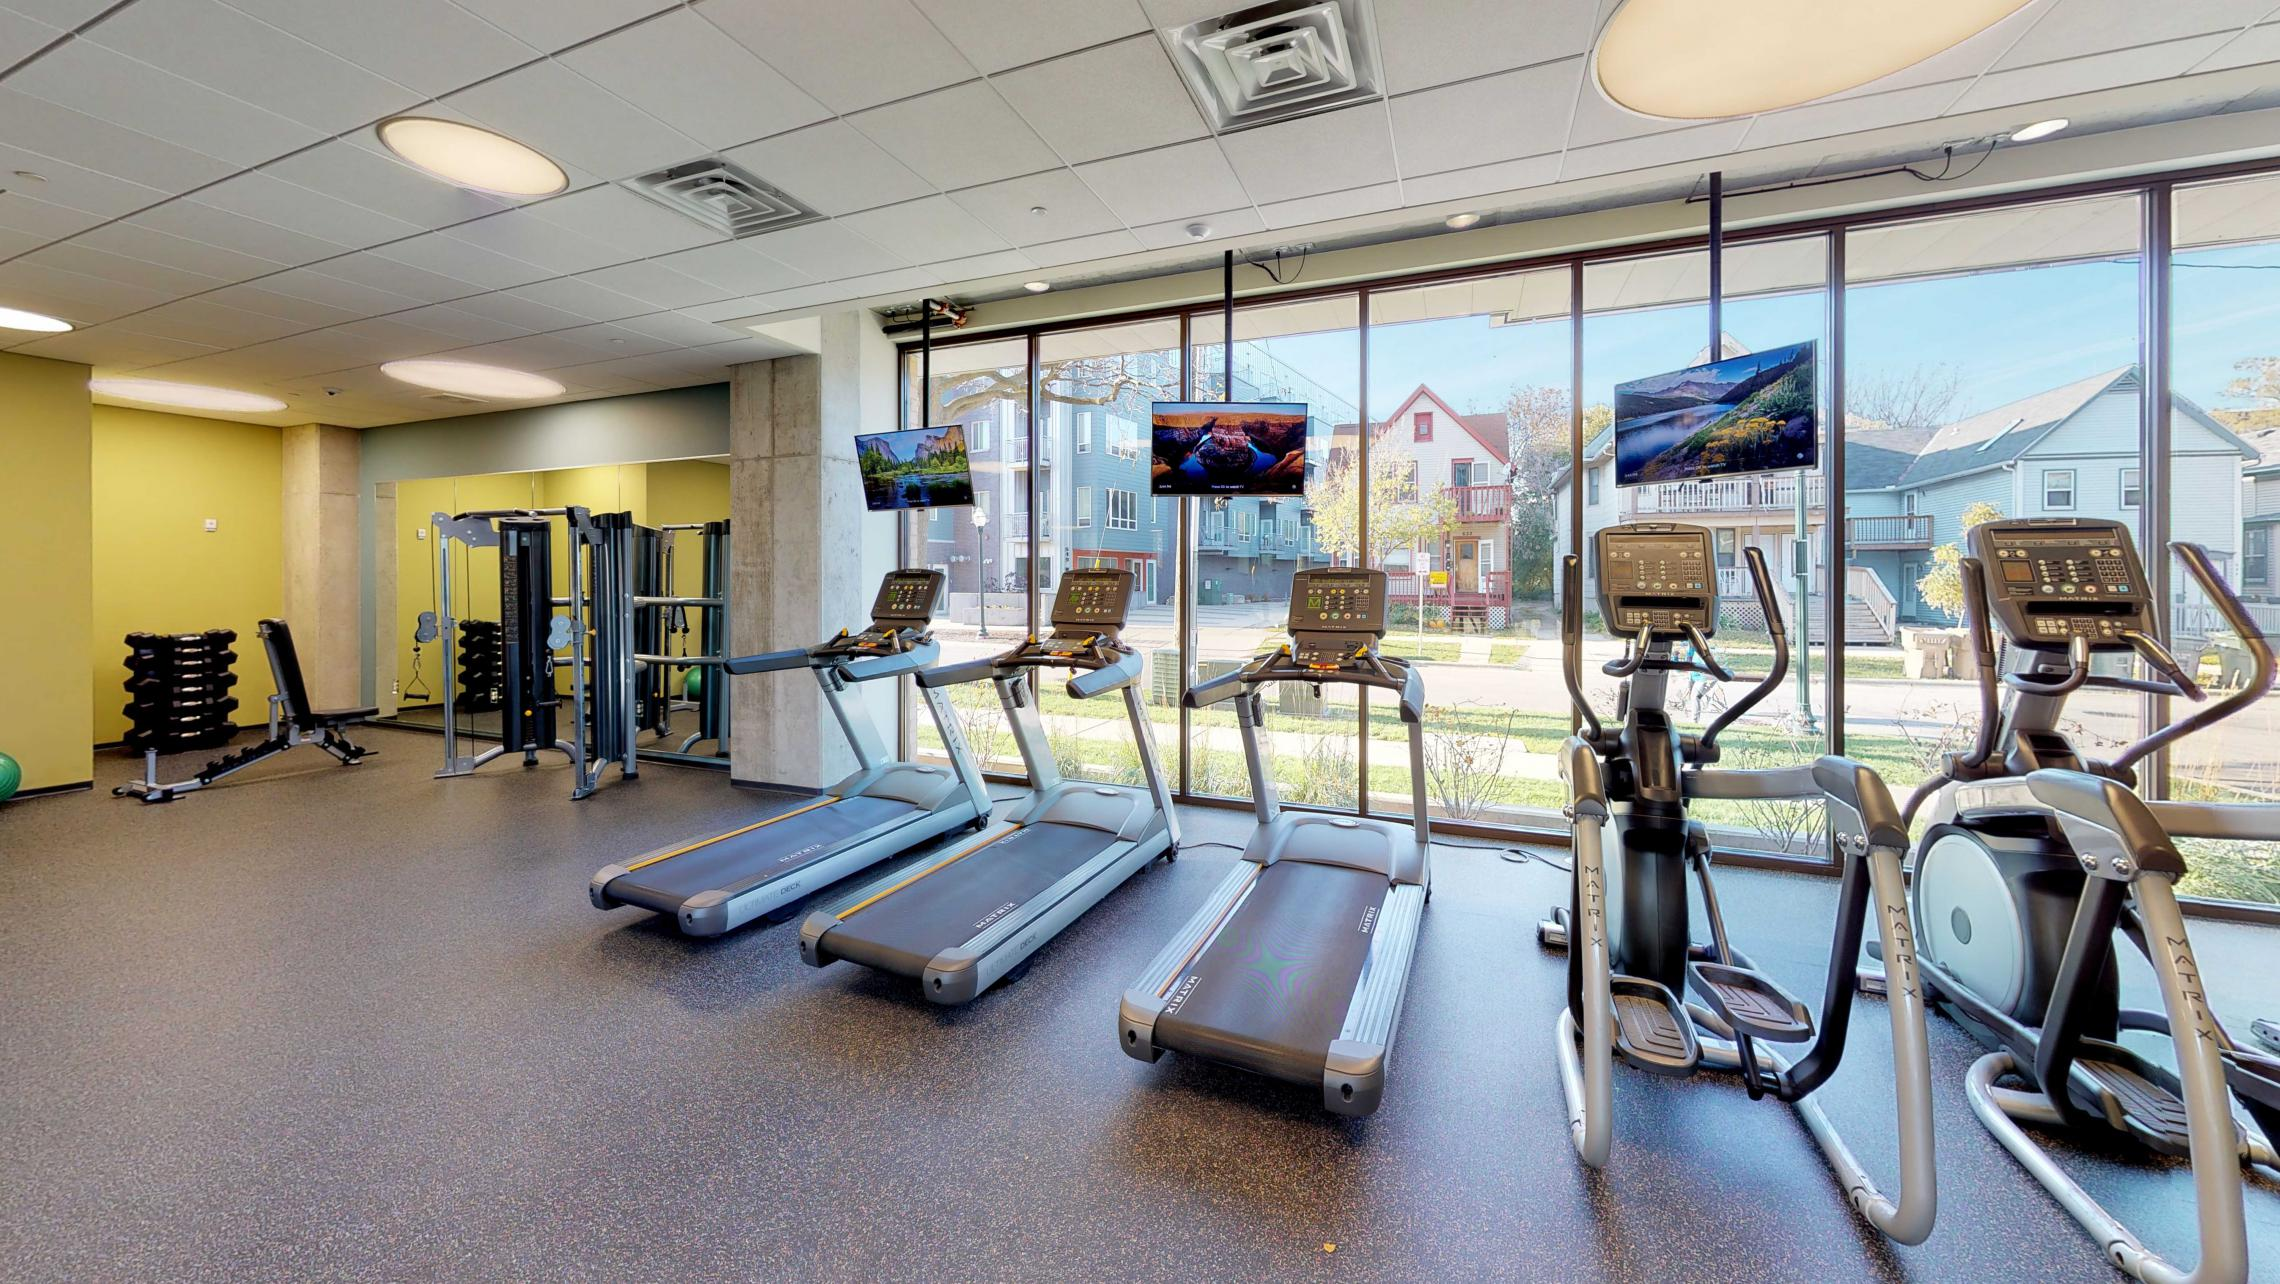 Nine-Line-Common-Fitness-Upscale-Gym-Workout-Modern-Luxury-Apartments-Downtown-Madison.jpg